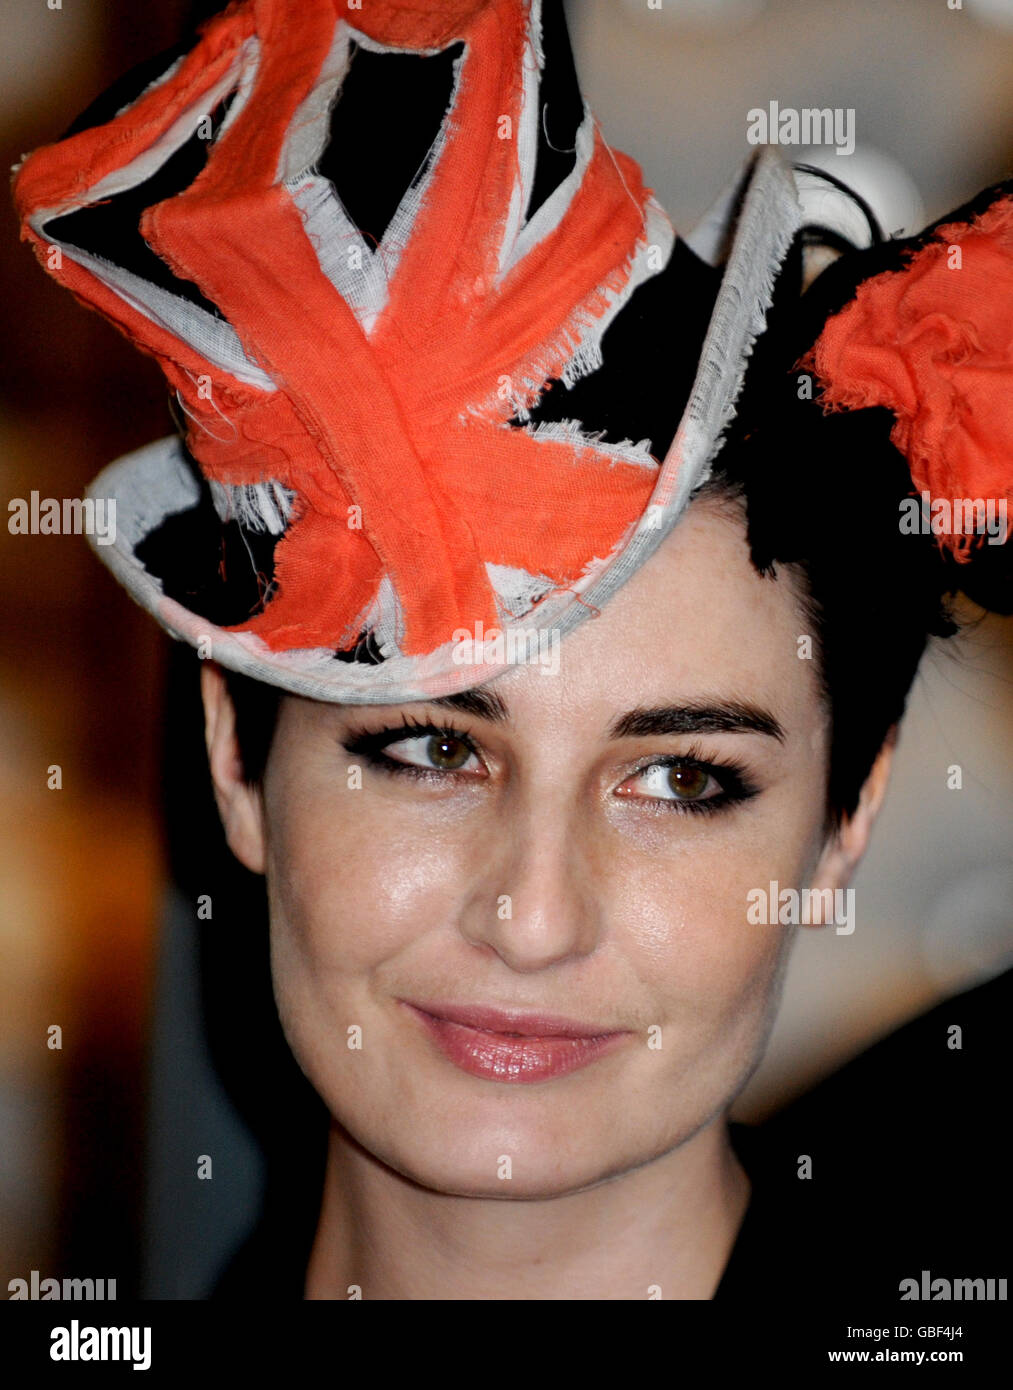 Hats  An Anthology by Stephen Jones exhibition Stock Photo ... 81c81944d0f